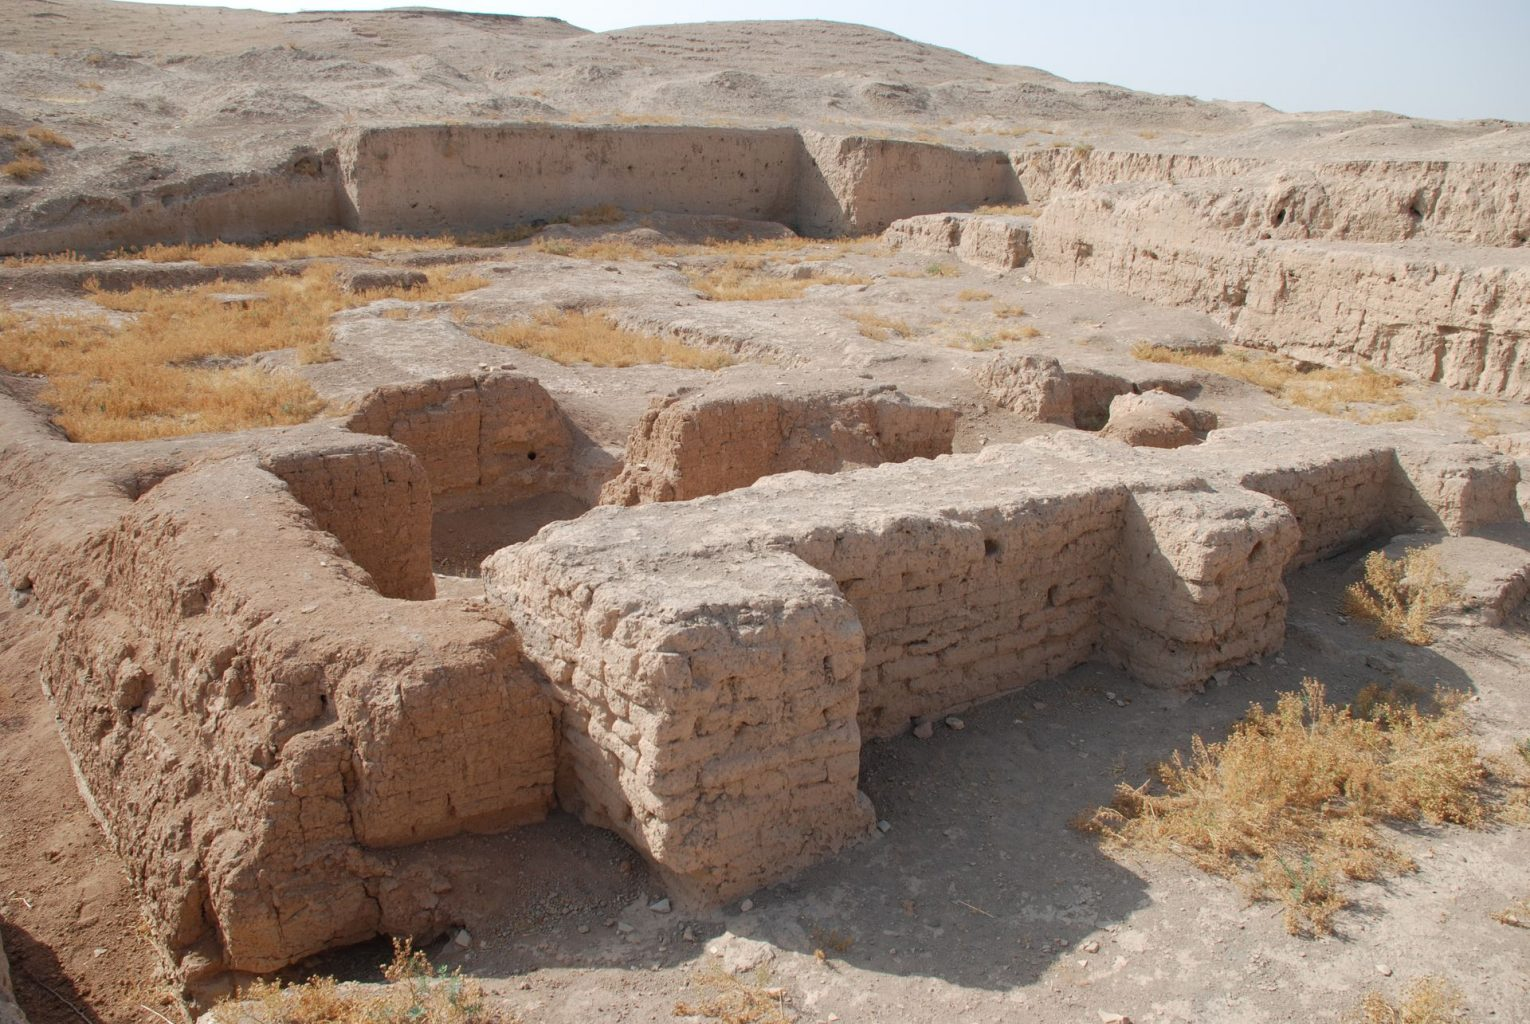 An image showing the excavated remnants of parts of Tell Brak. The Naram-Sin temple, a view center from north. Image Credit: Wikimedia Commons / CC BY 3.0.